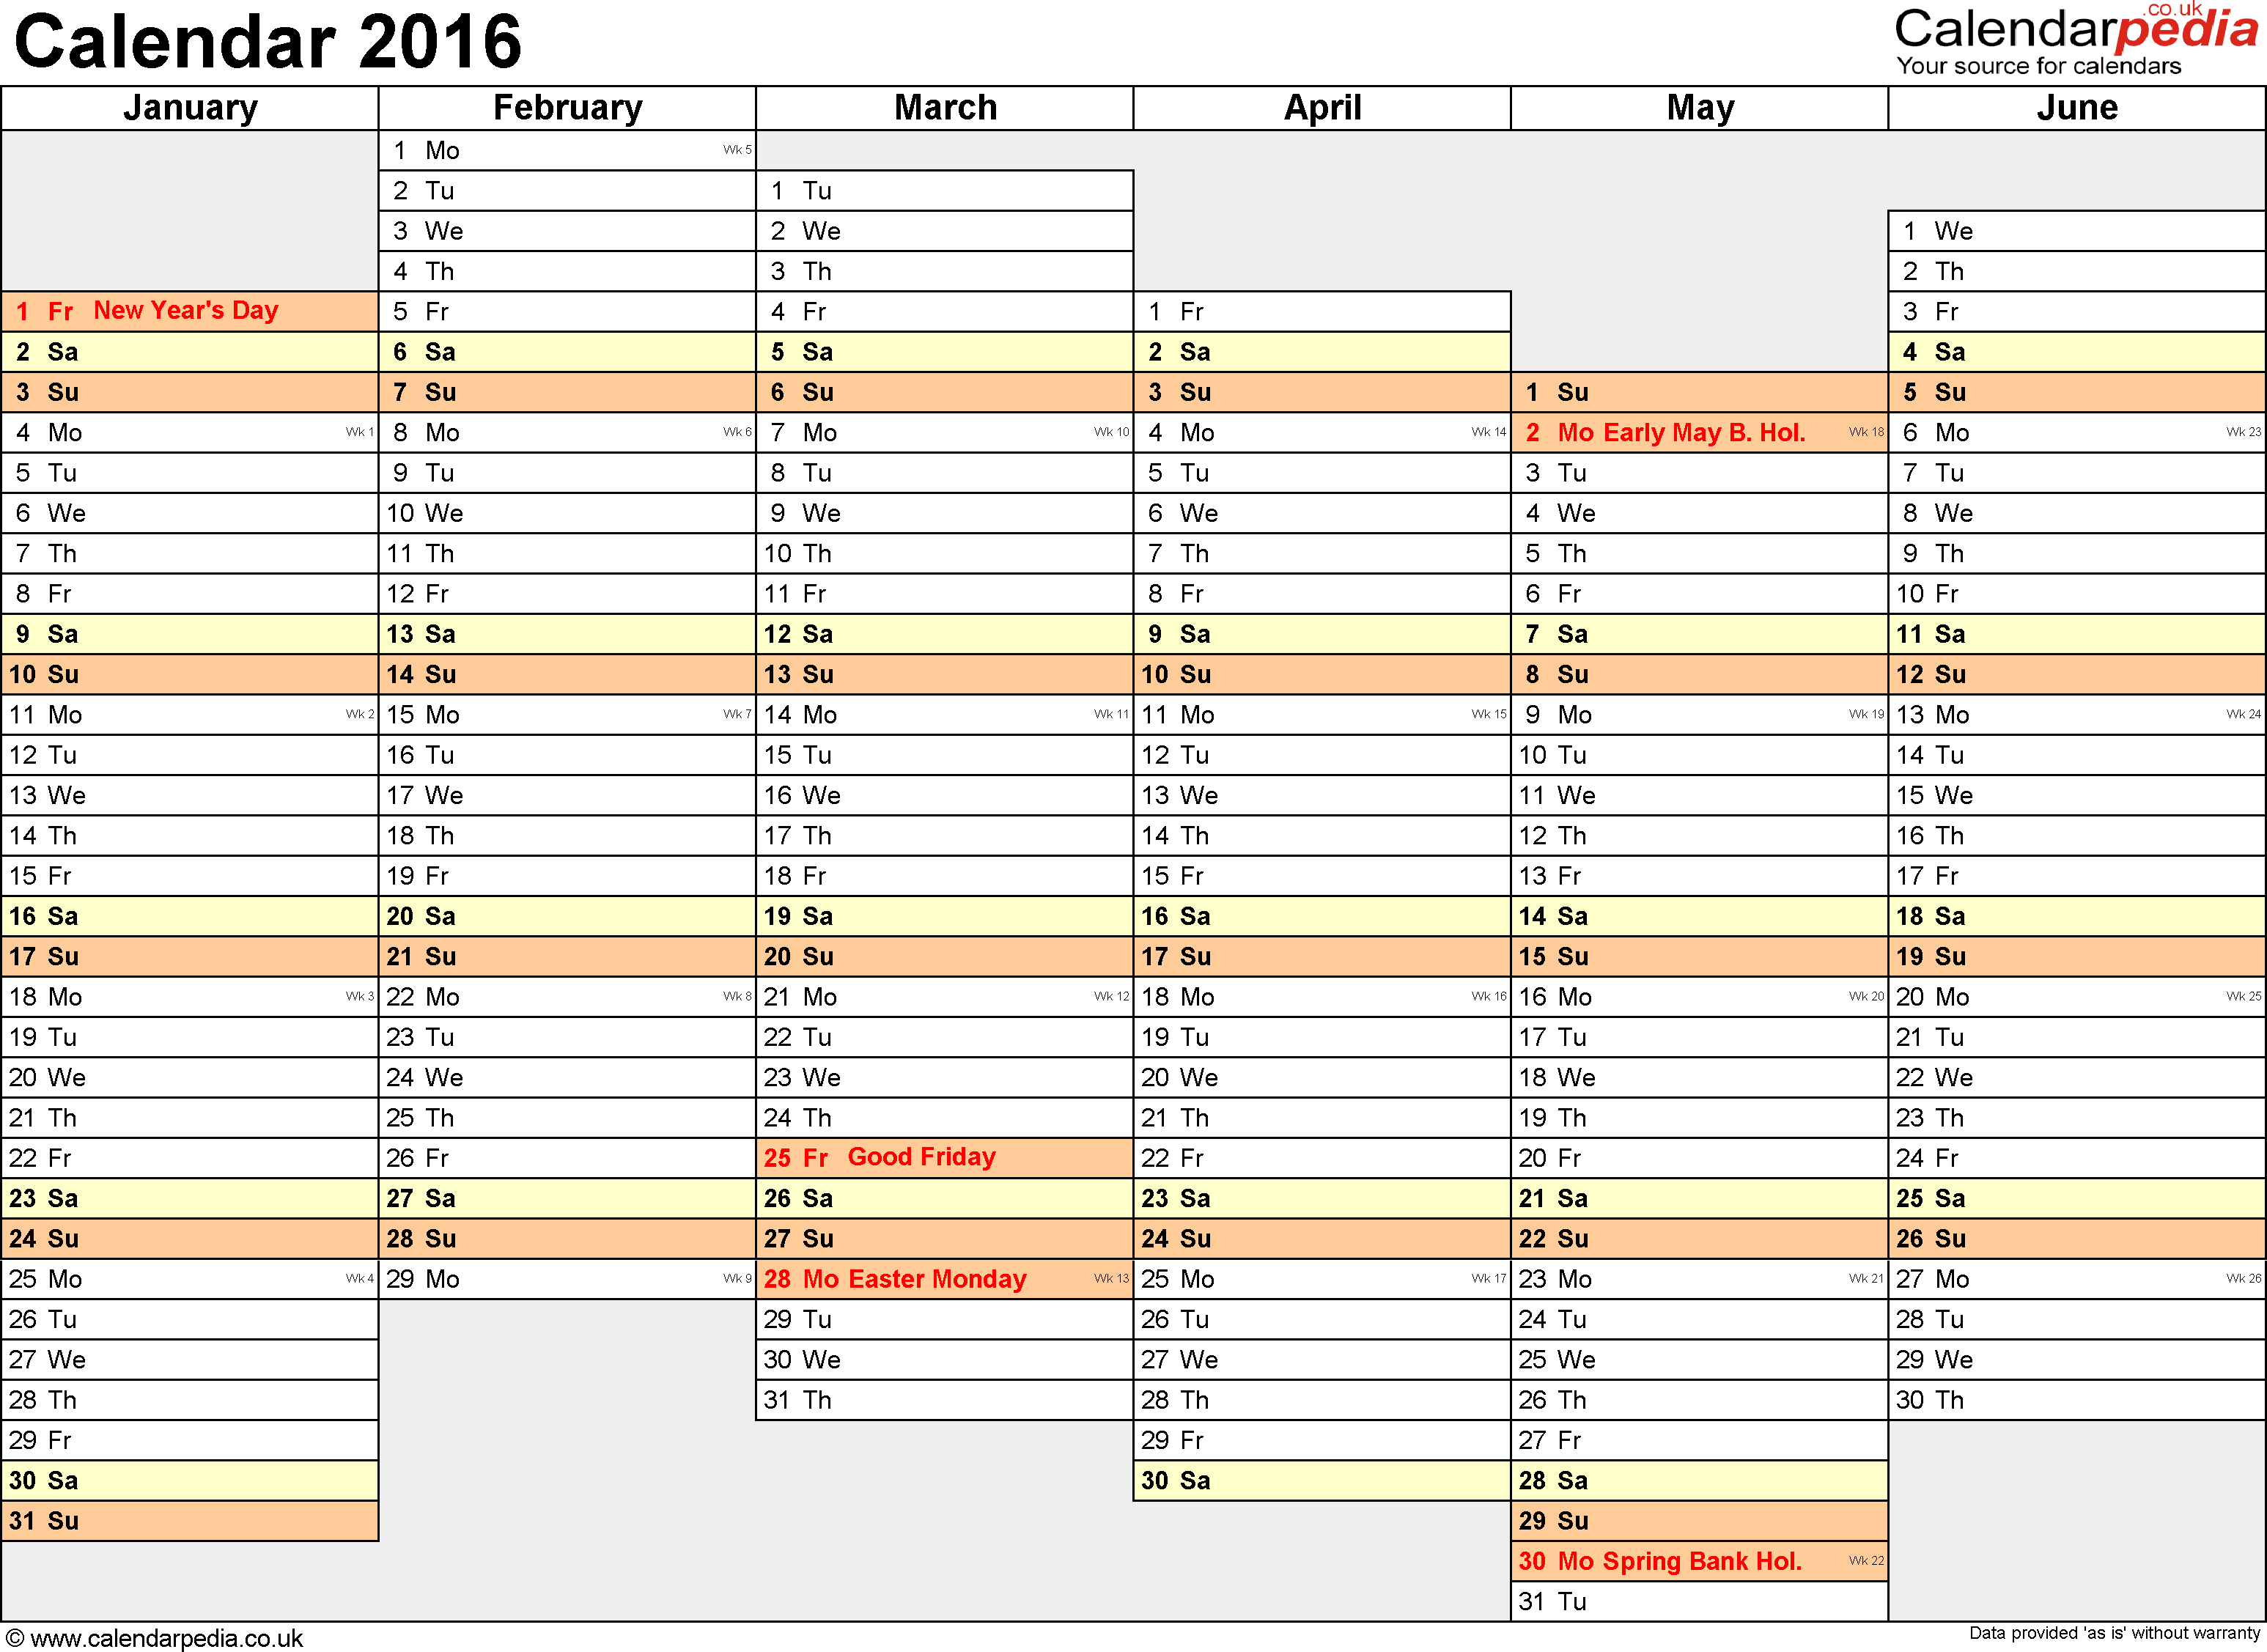 Template 4: Yearly calendar 2016 as Word template, landscape orientation, A4, 2 pages, months horizontally, days vertically, days of the week in line, with UK bank holidays and week numbers